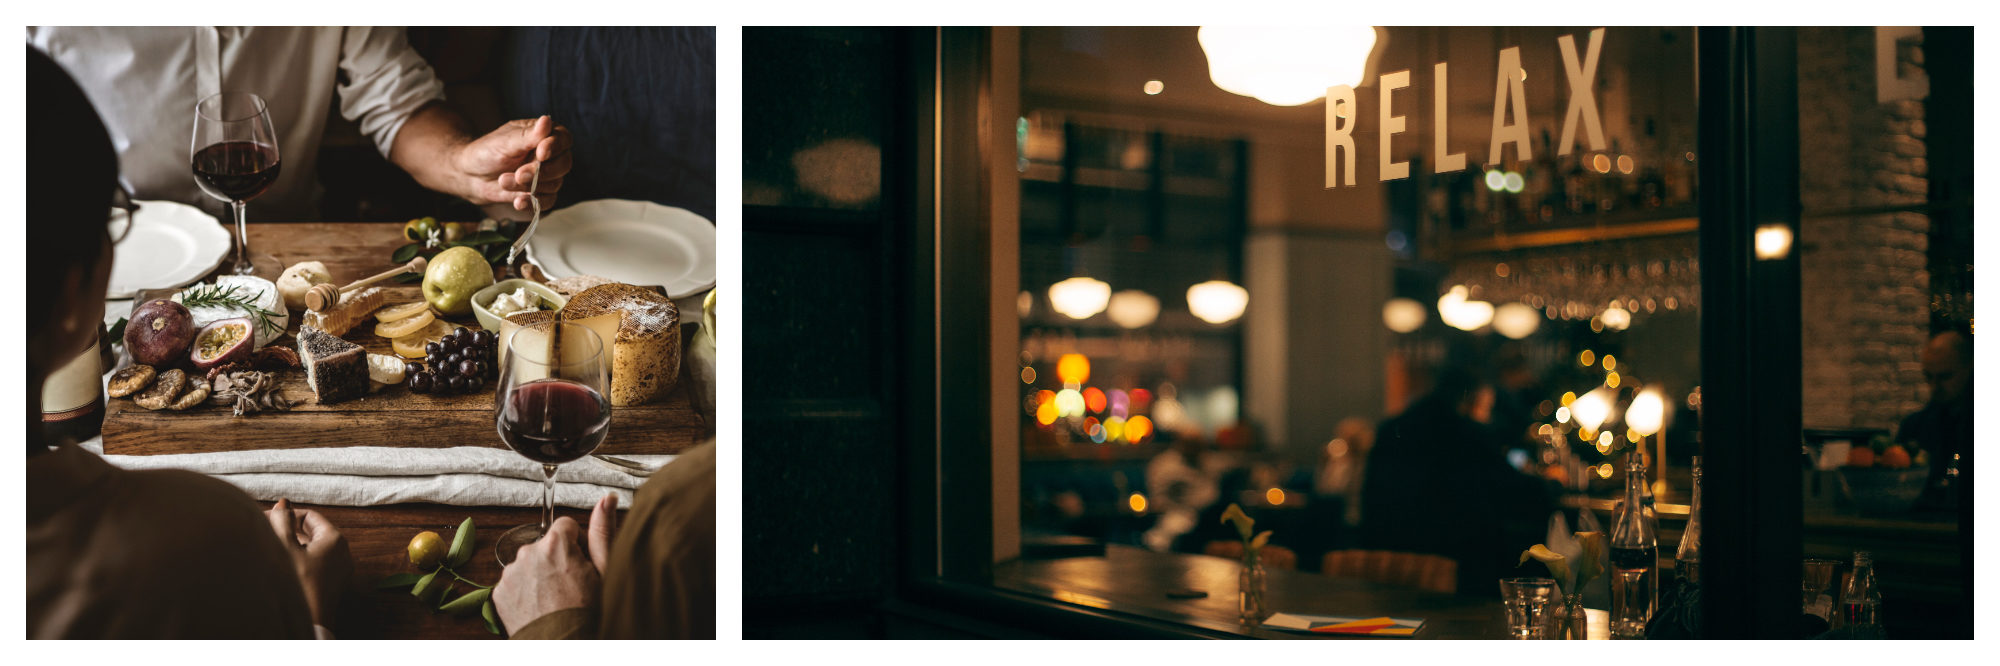 After work in Paris, locals like to enjoy ham and cheese with wine at home (left) whereas in London, people tend to head out for a drink at a bar (right).